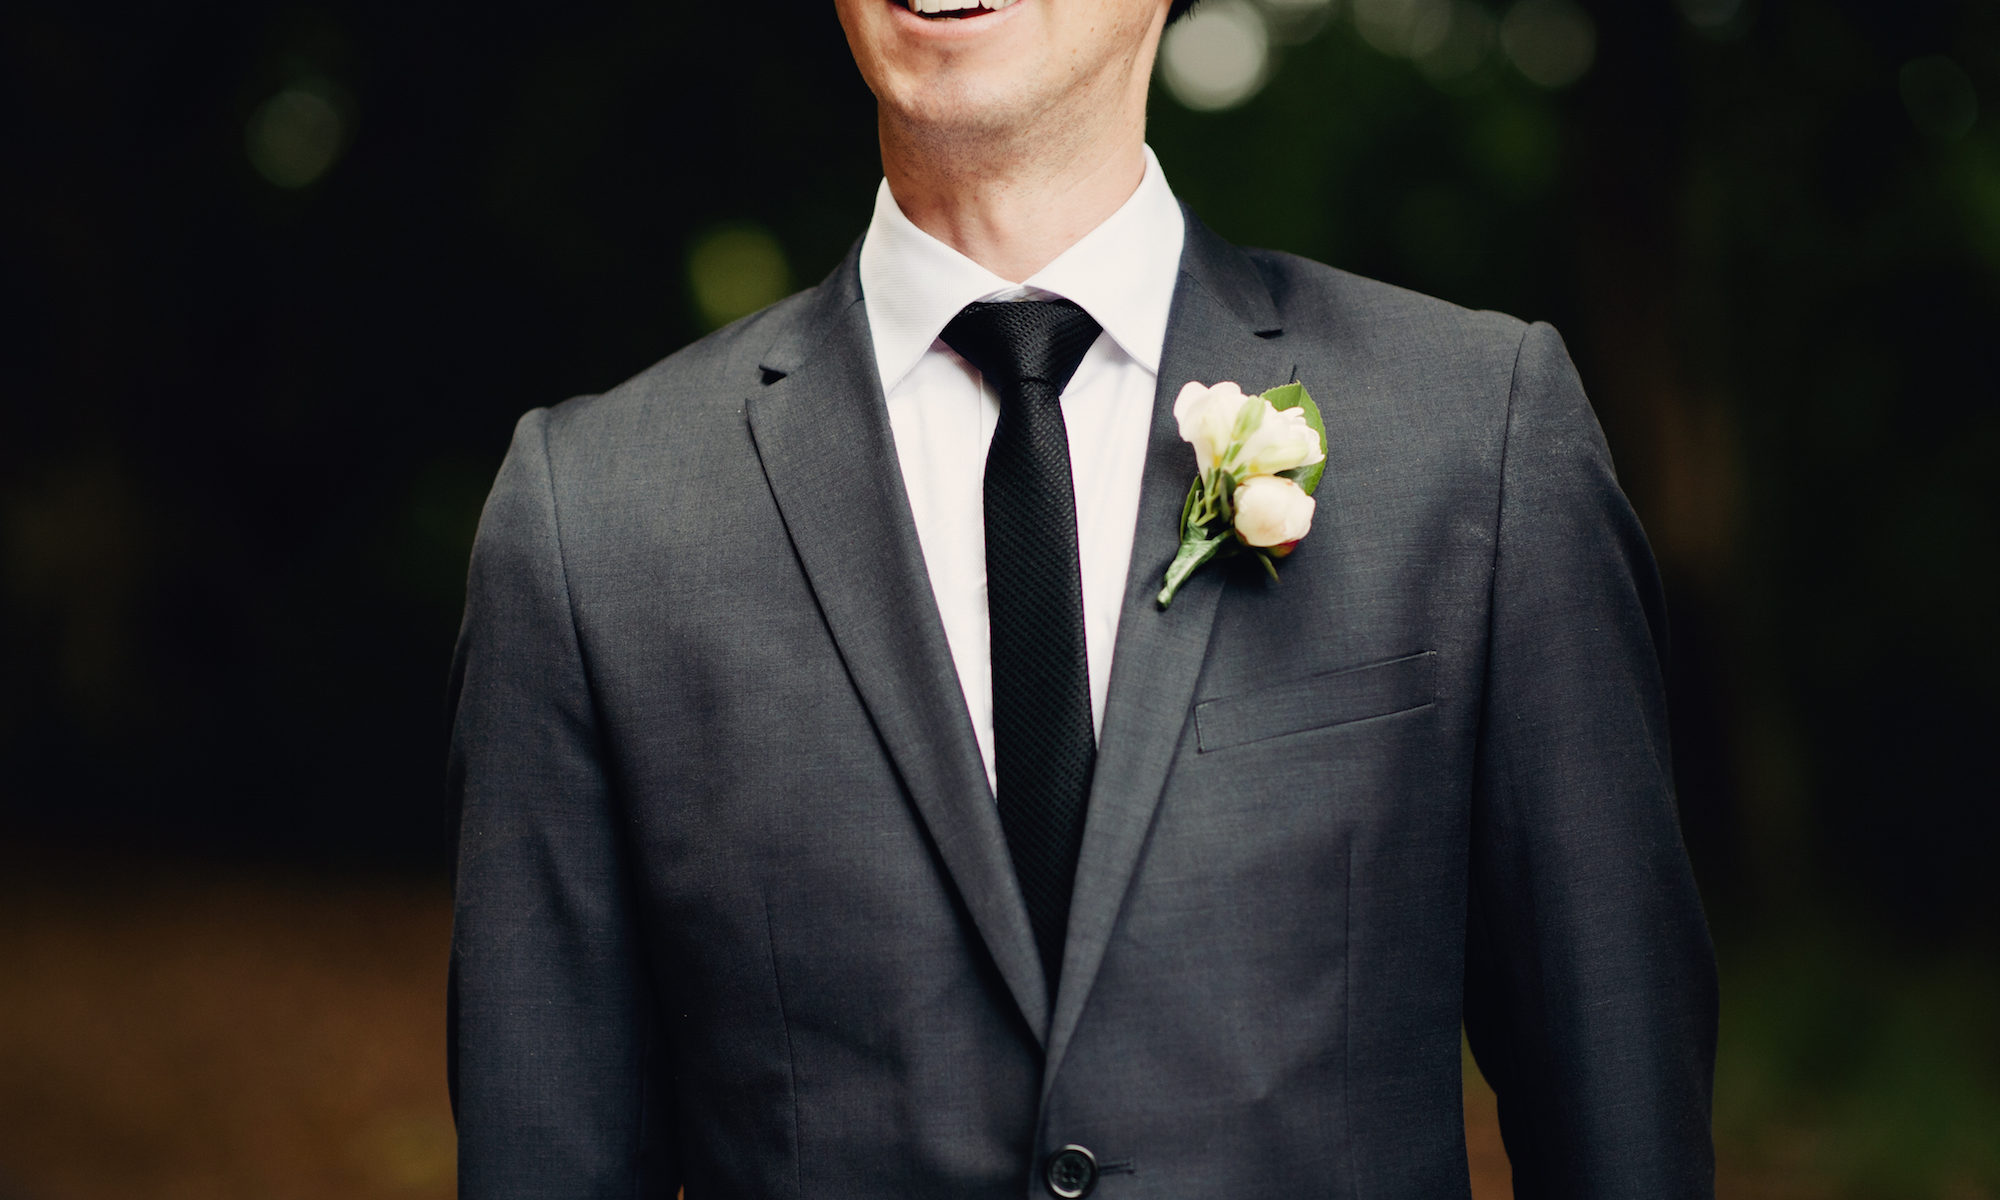 A groom on his wedding day